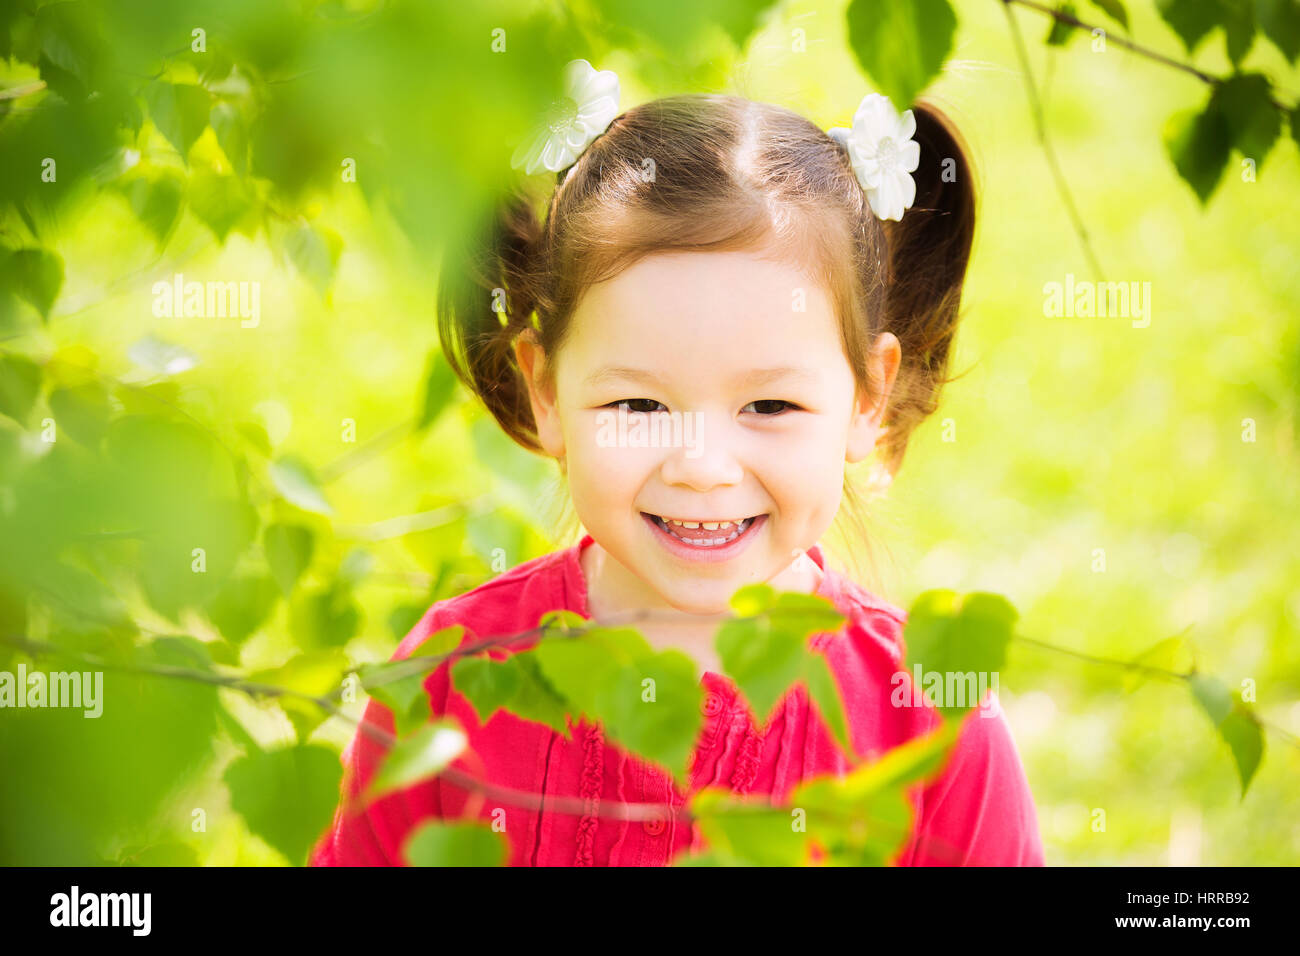 Closeup portrait of cute funny laughing girl of four years old playing cheerfully outside in spring sunny city park. - Stock Image